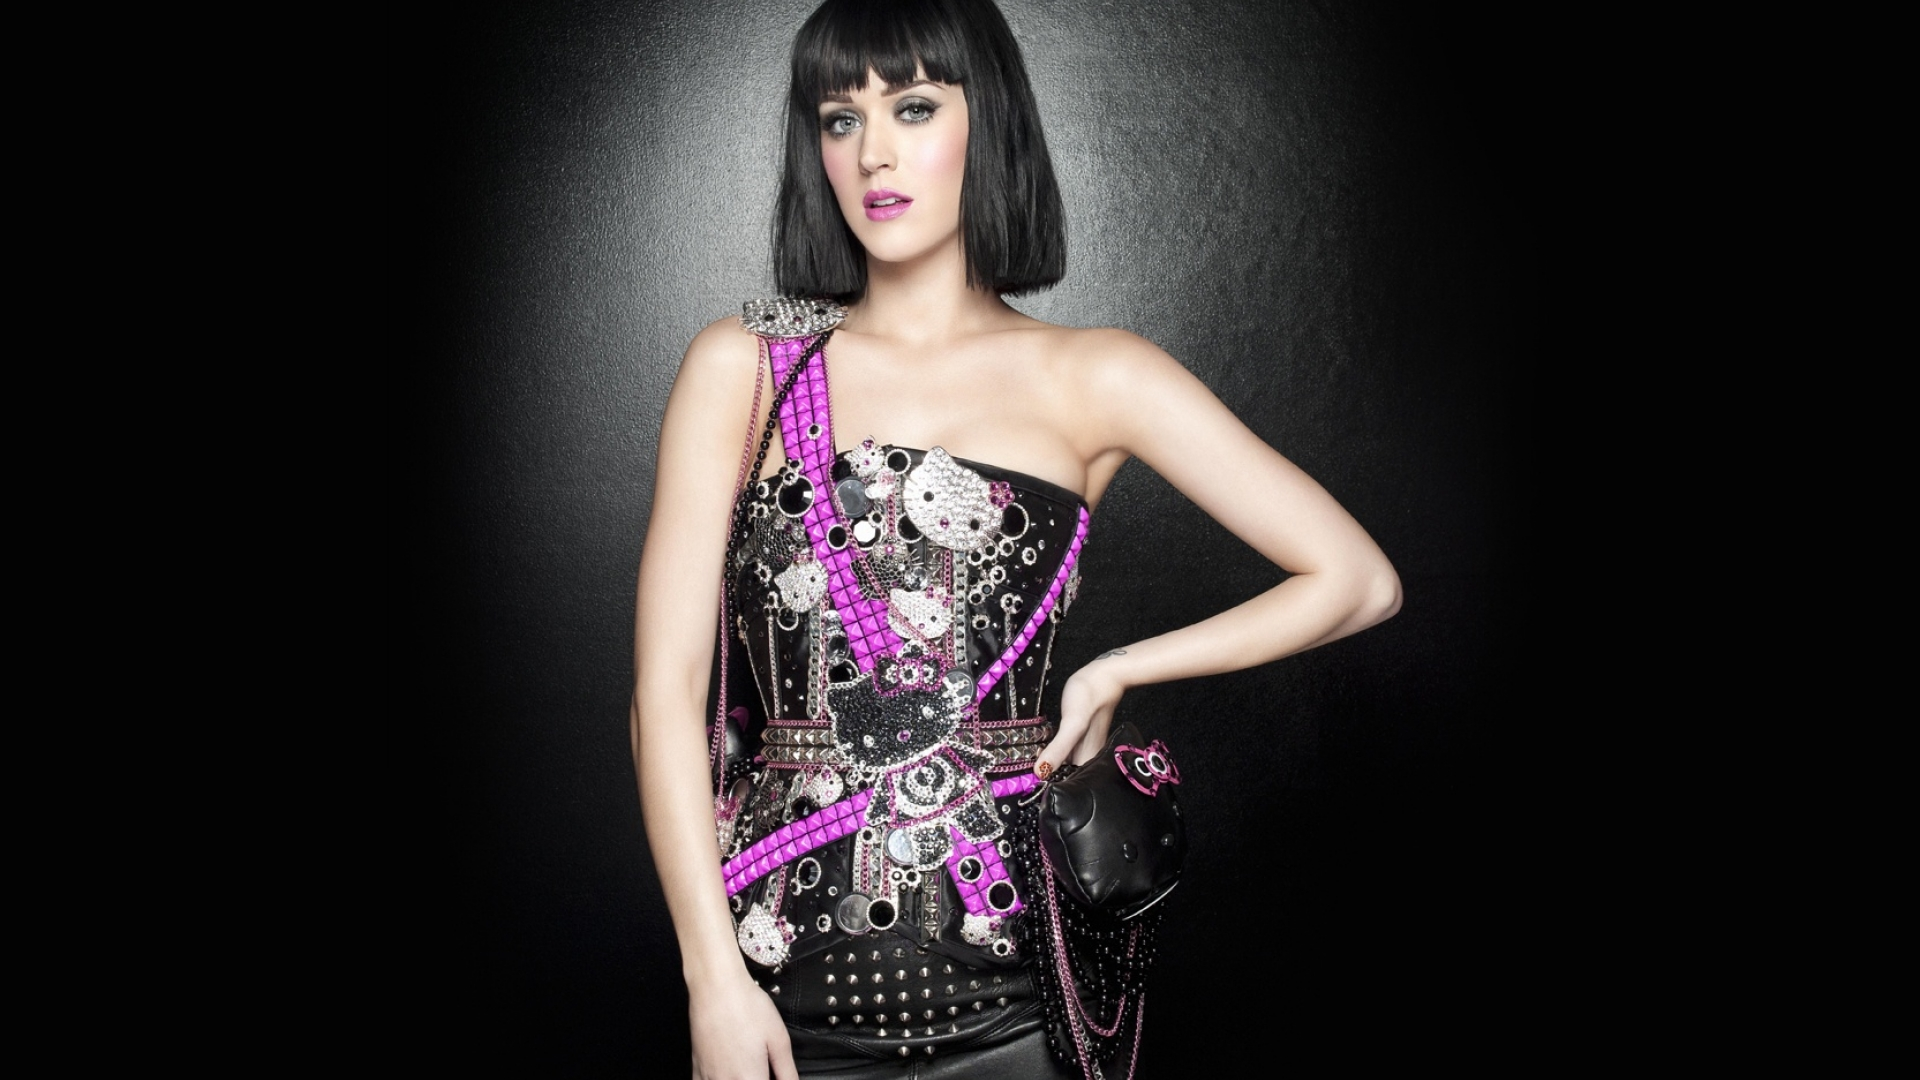 Katy Perry rocker dress wallpaper